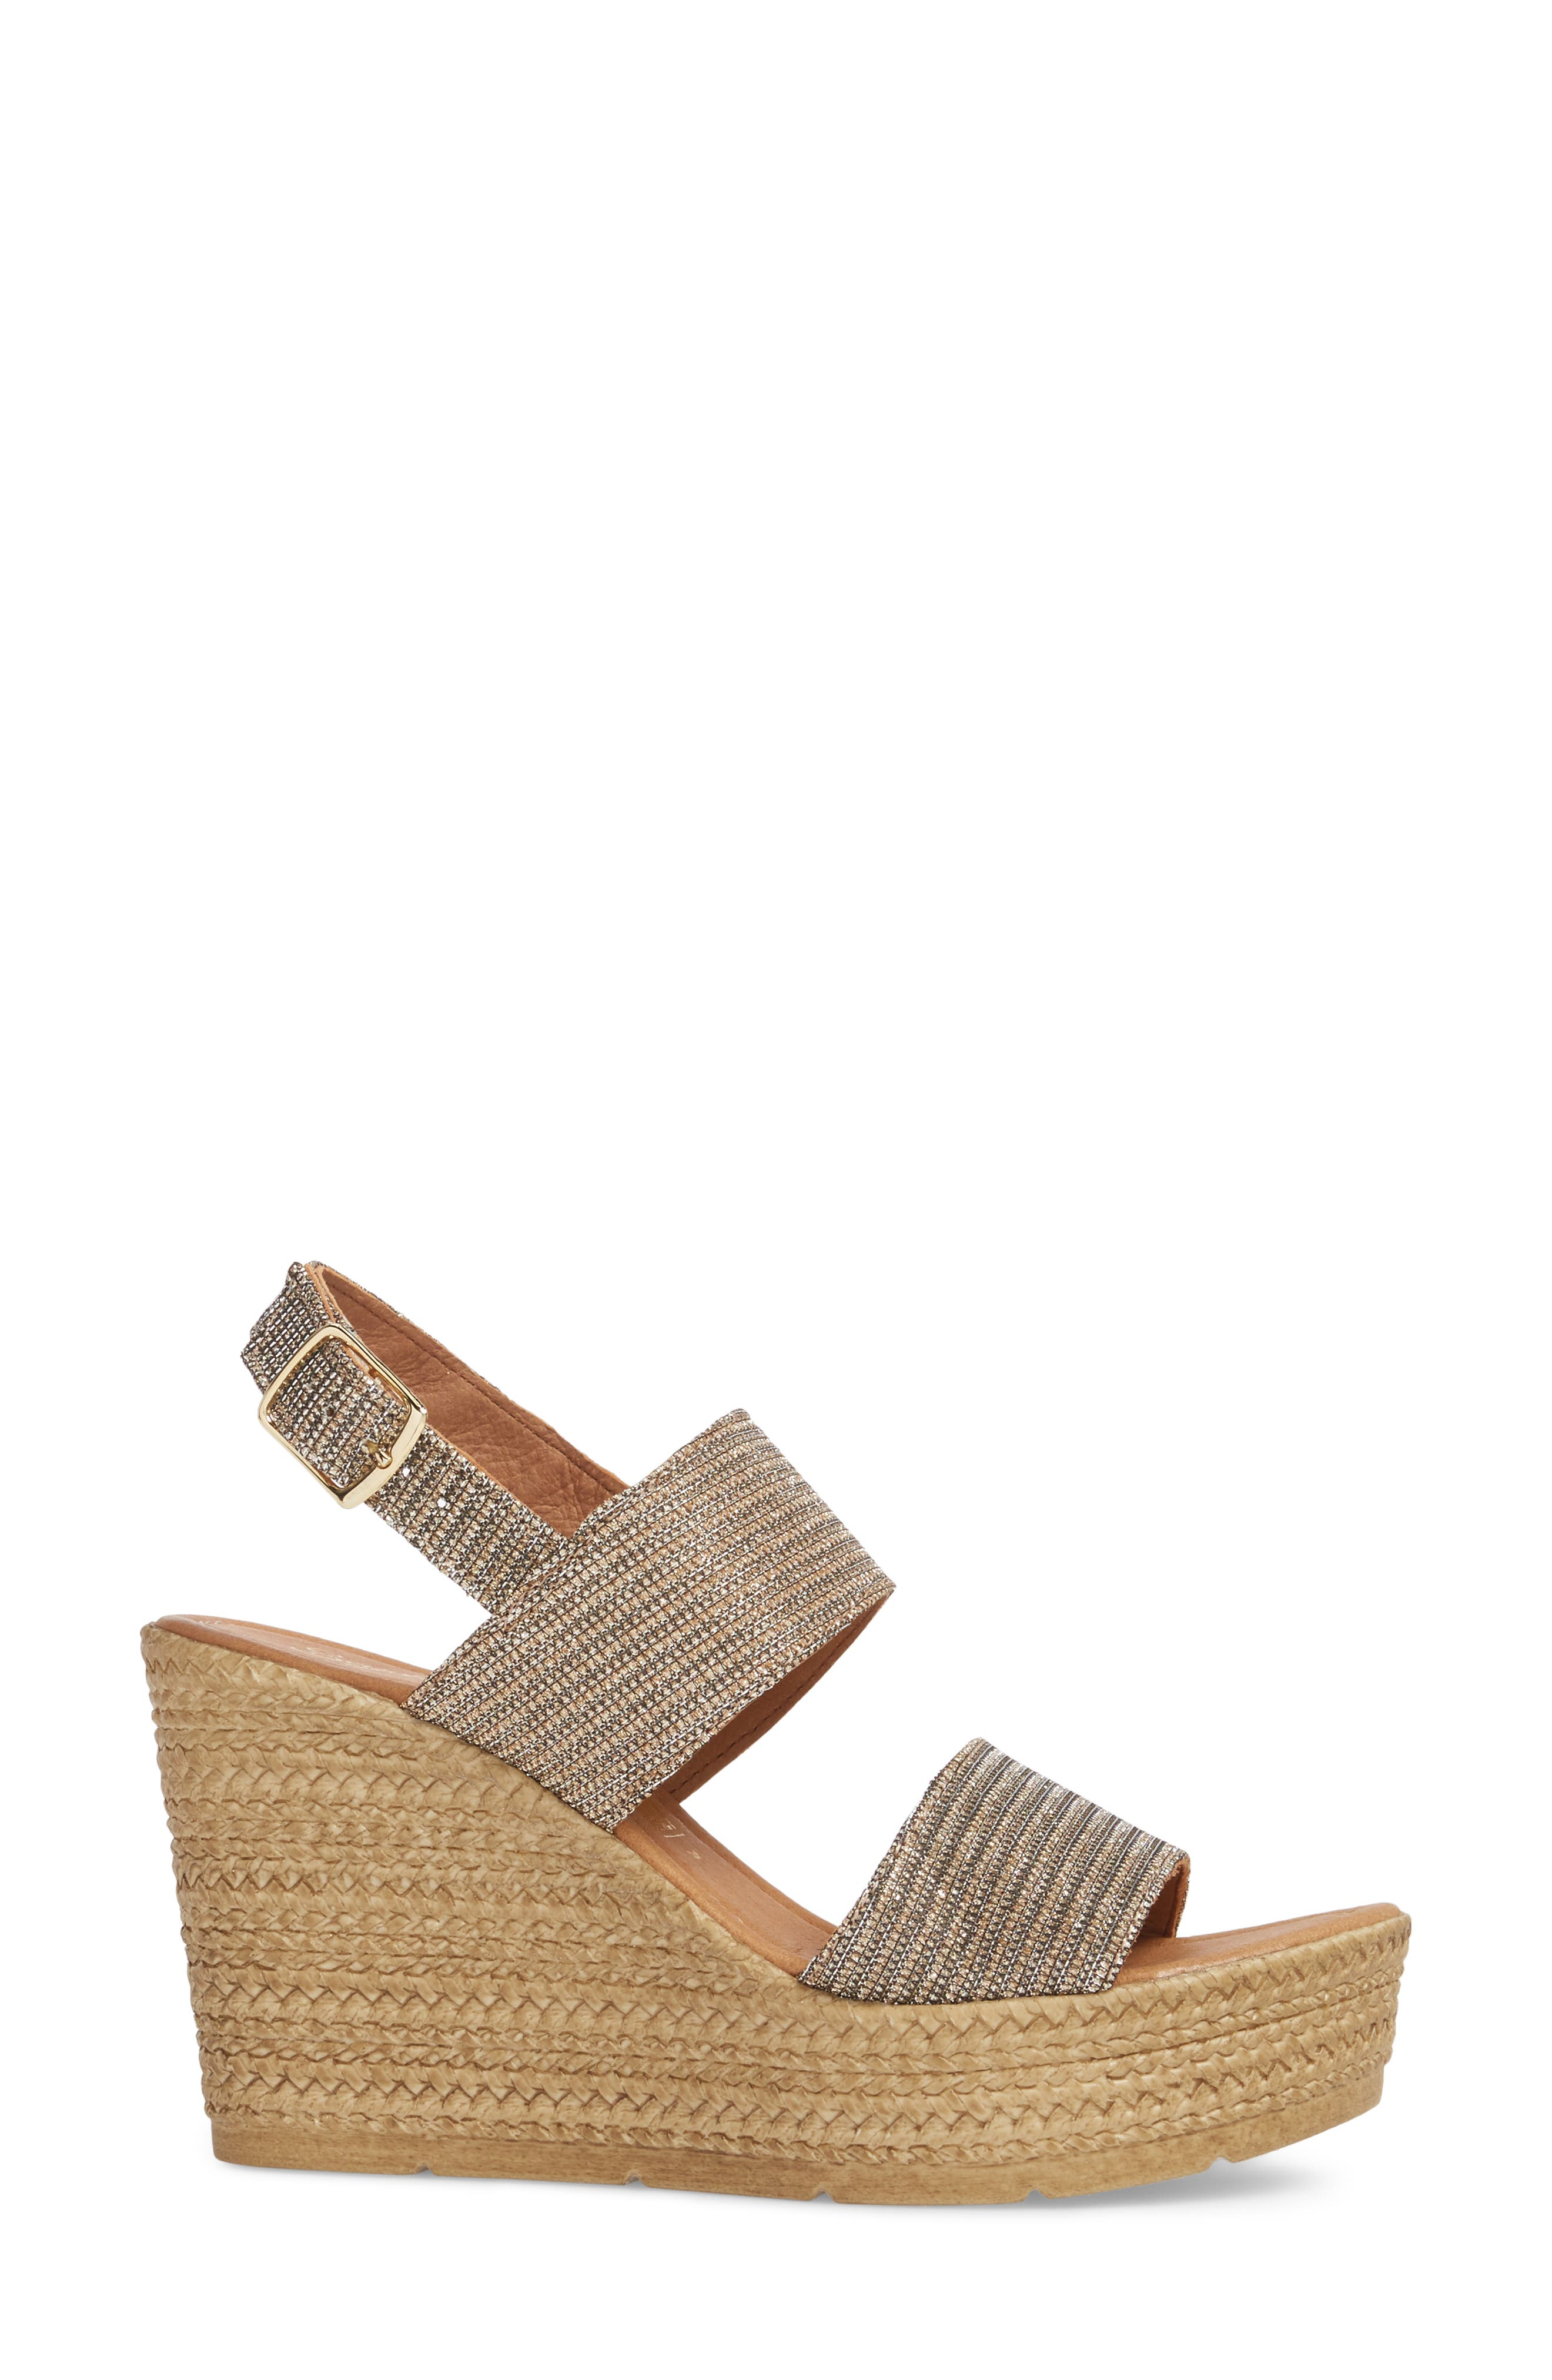 Downtime Wedge Sandal,                             Alternate thumbnail 3, color,                             Bronze Metallic Fabric